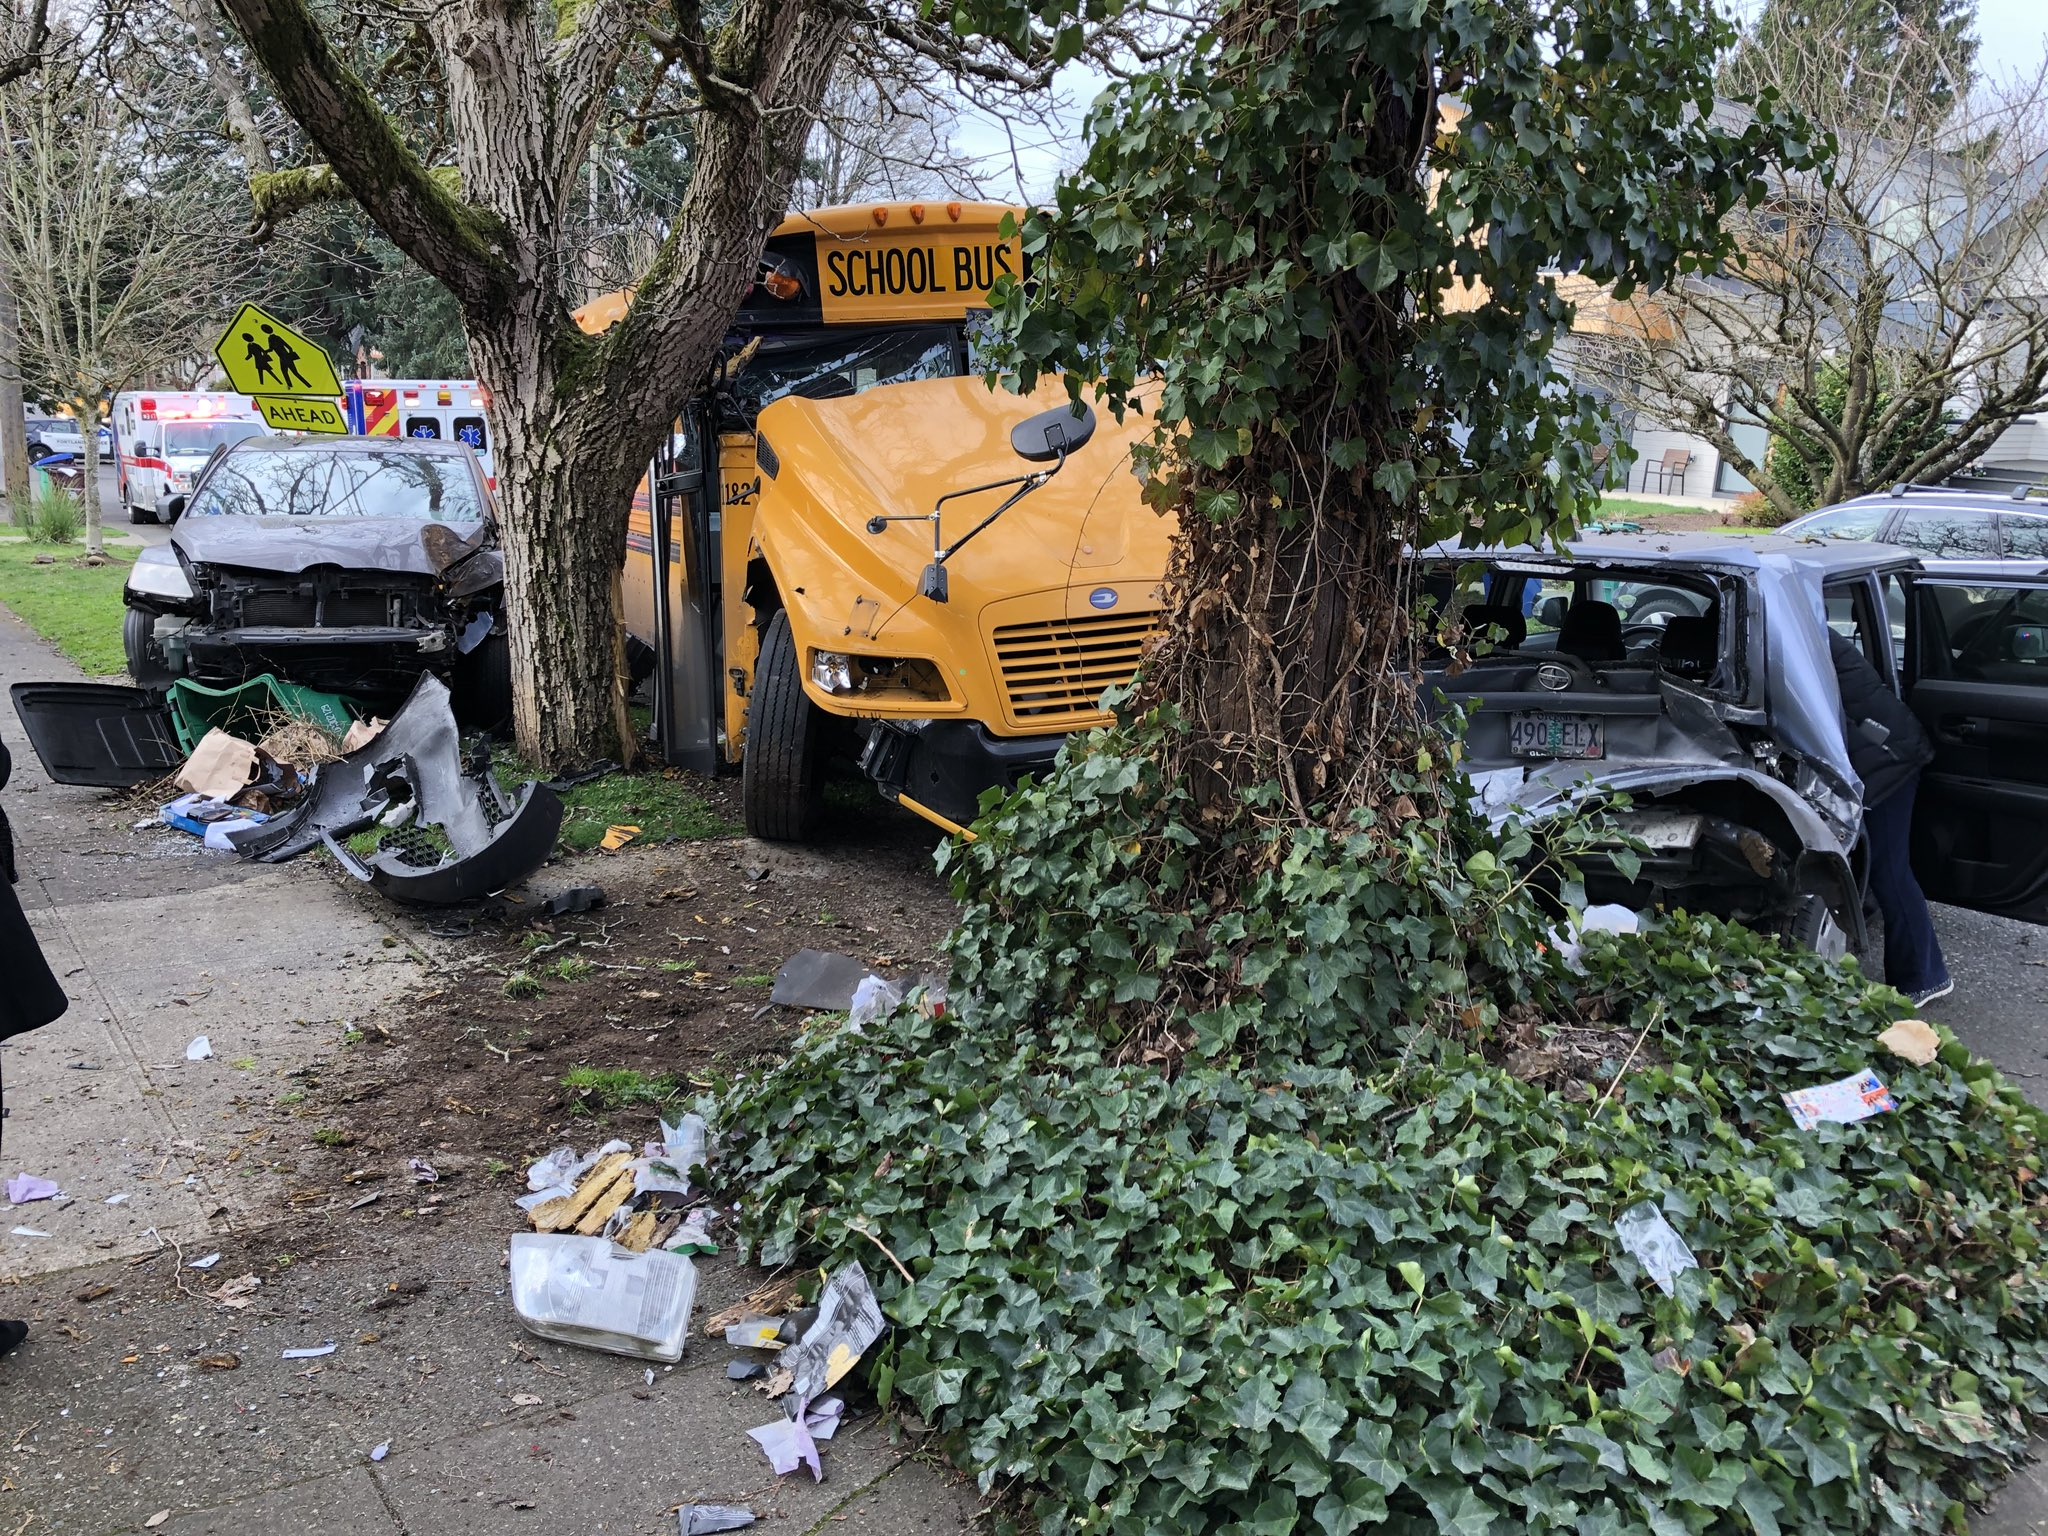 School bus crash 2.jpg